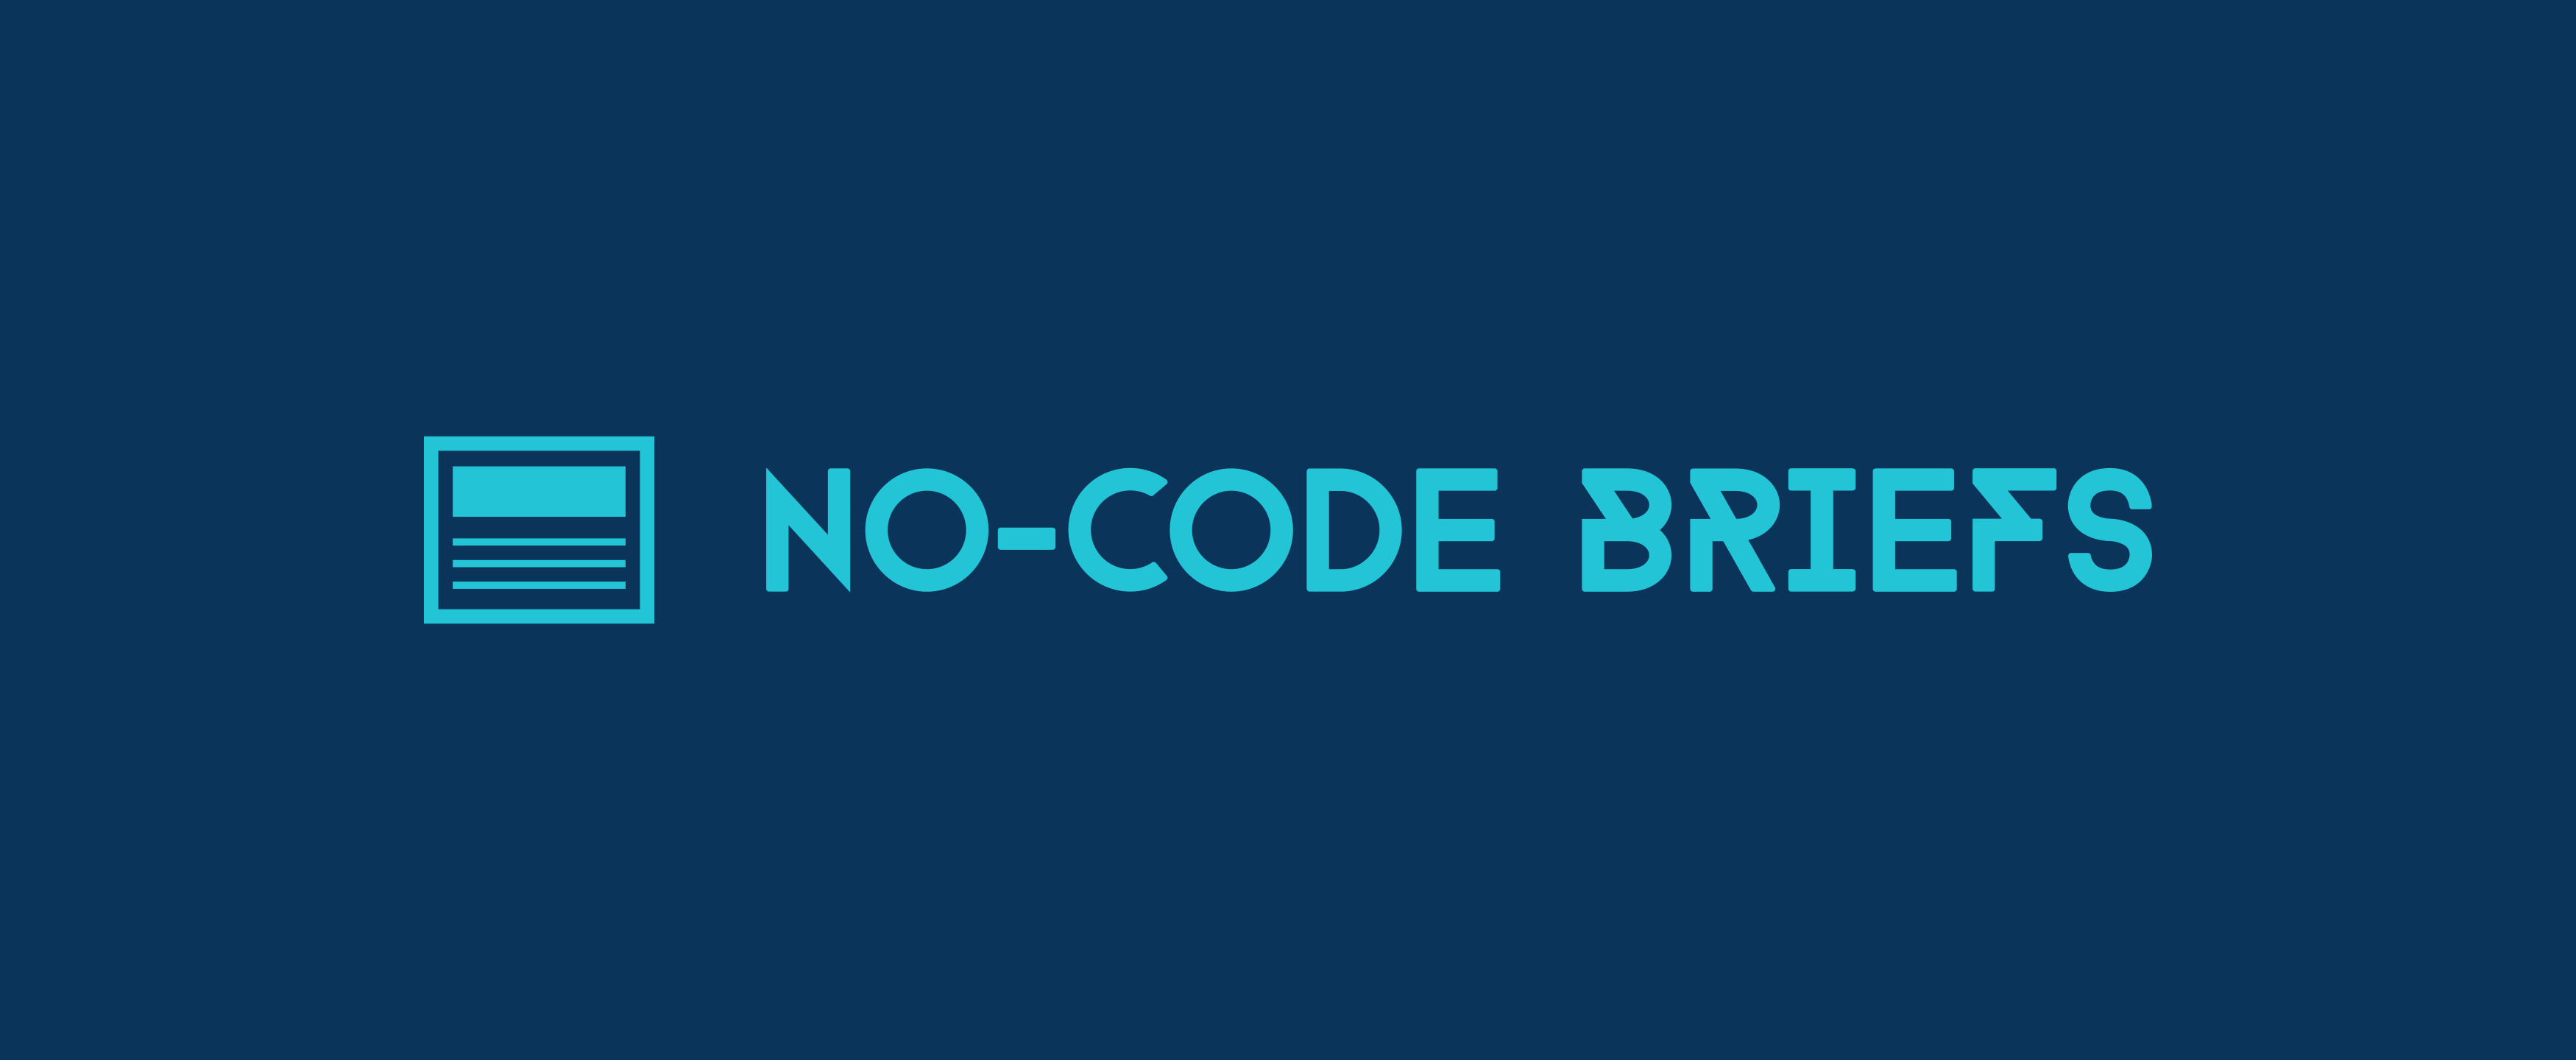 No-Code Briefs Logo